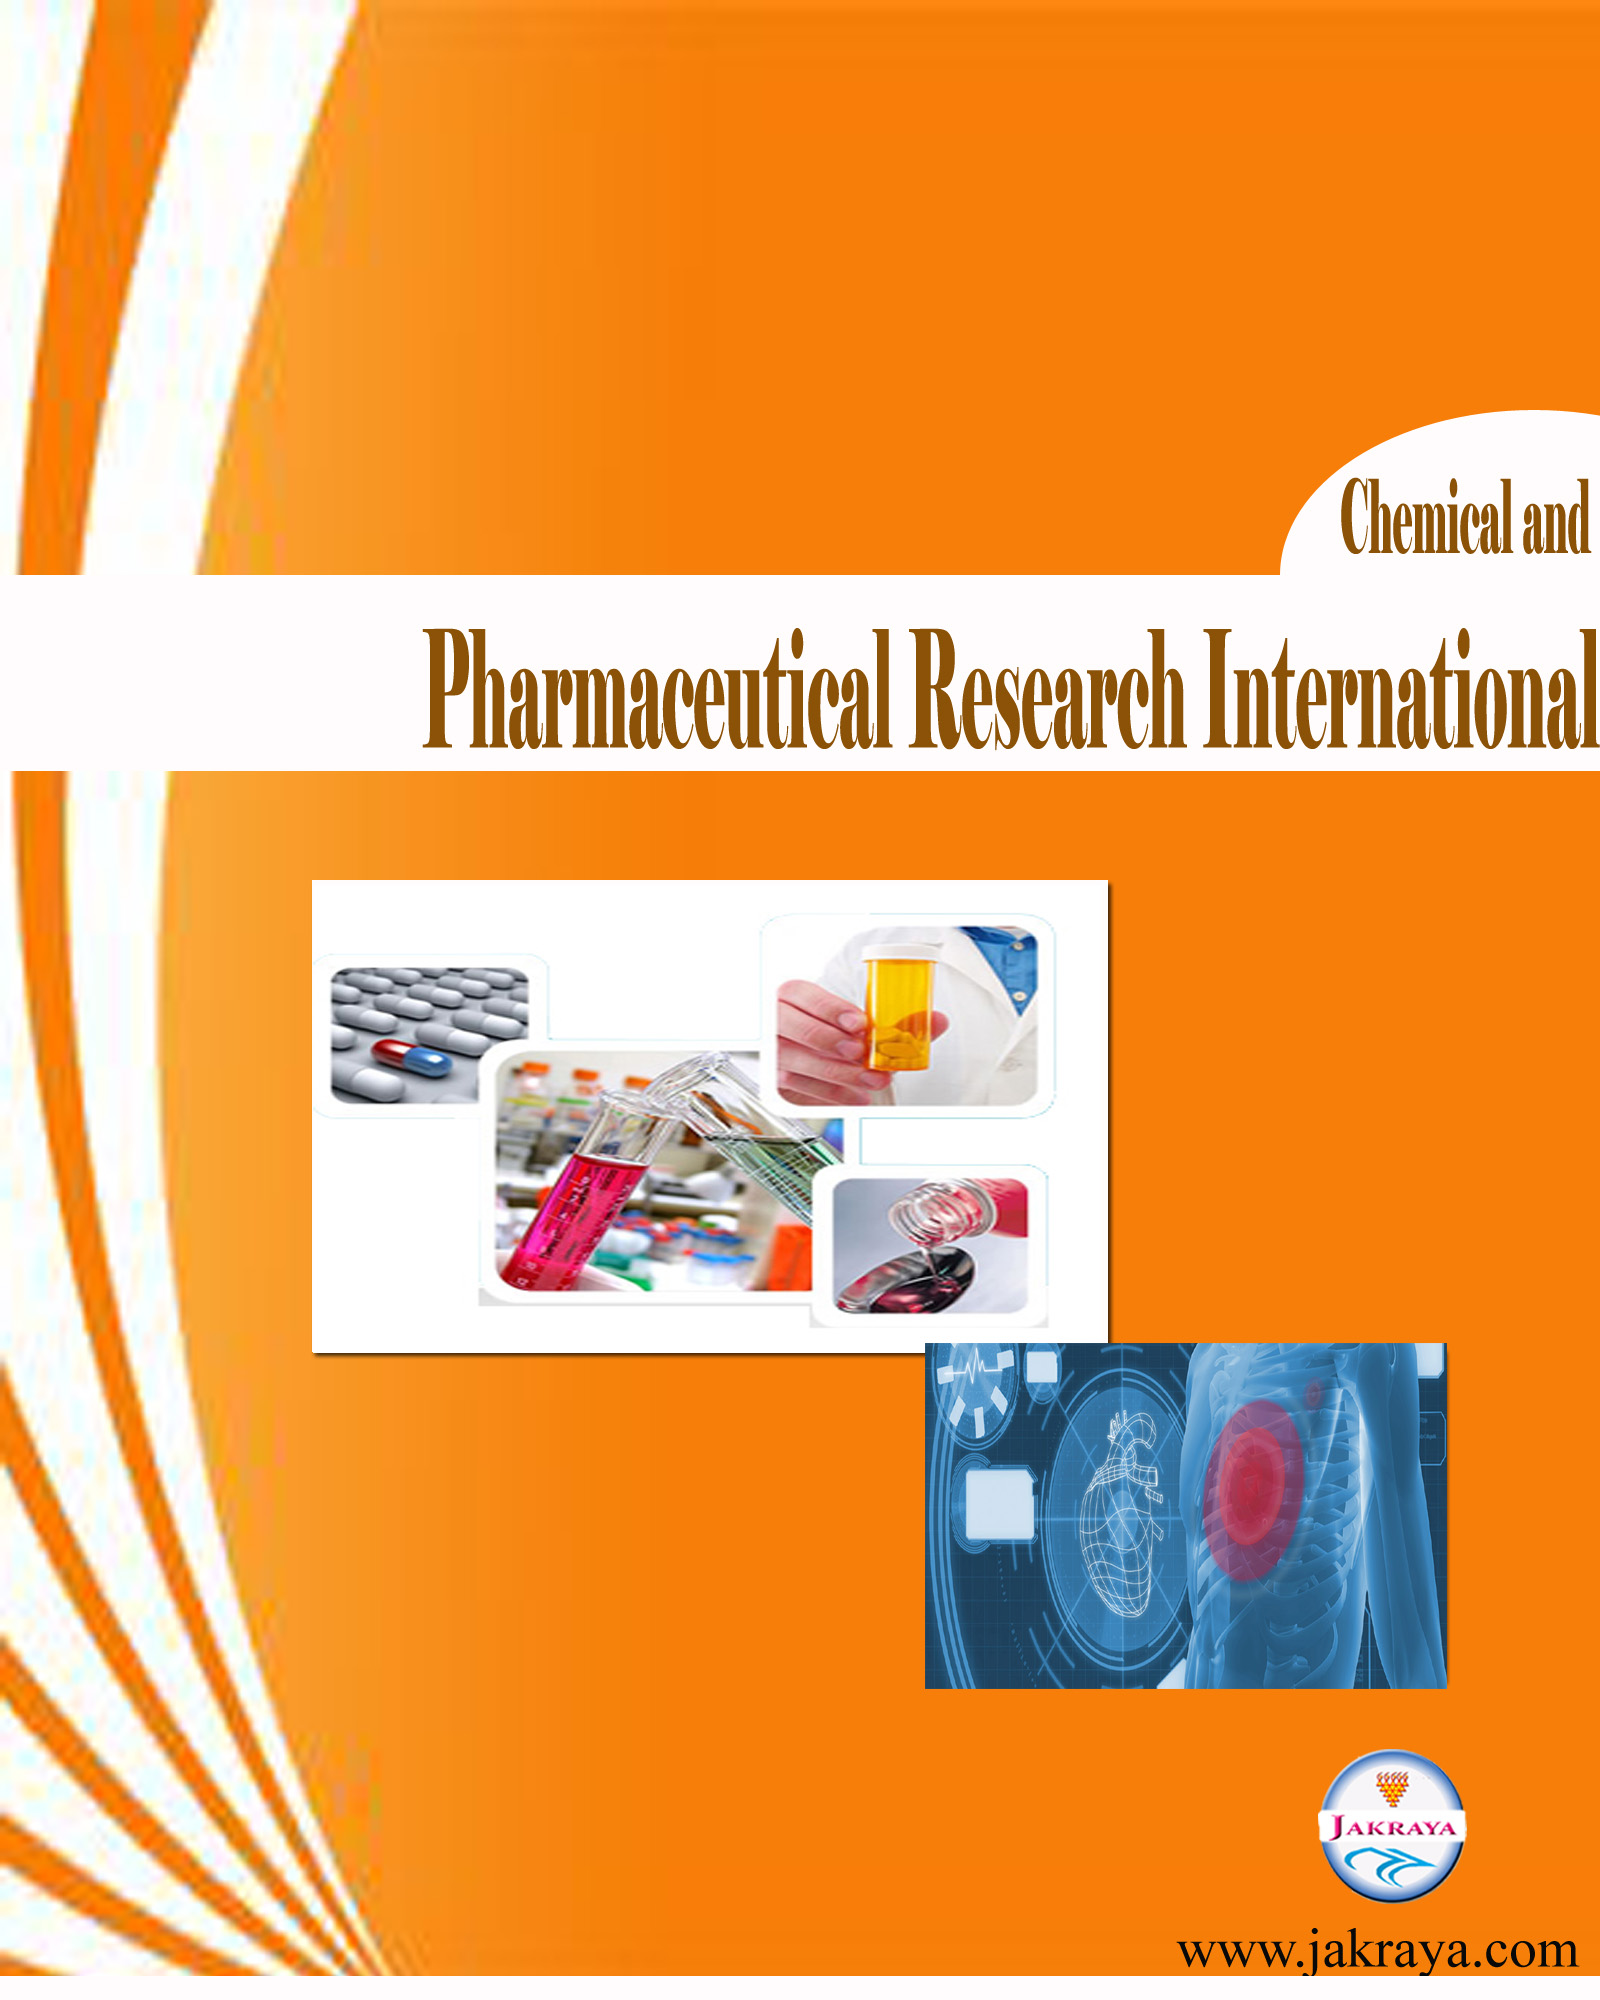 Chemical and Pharmaceutical Research International